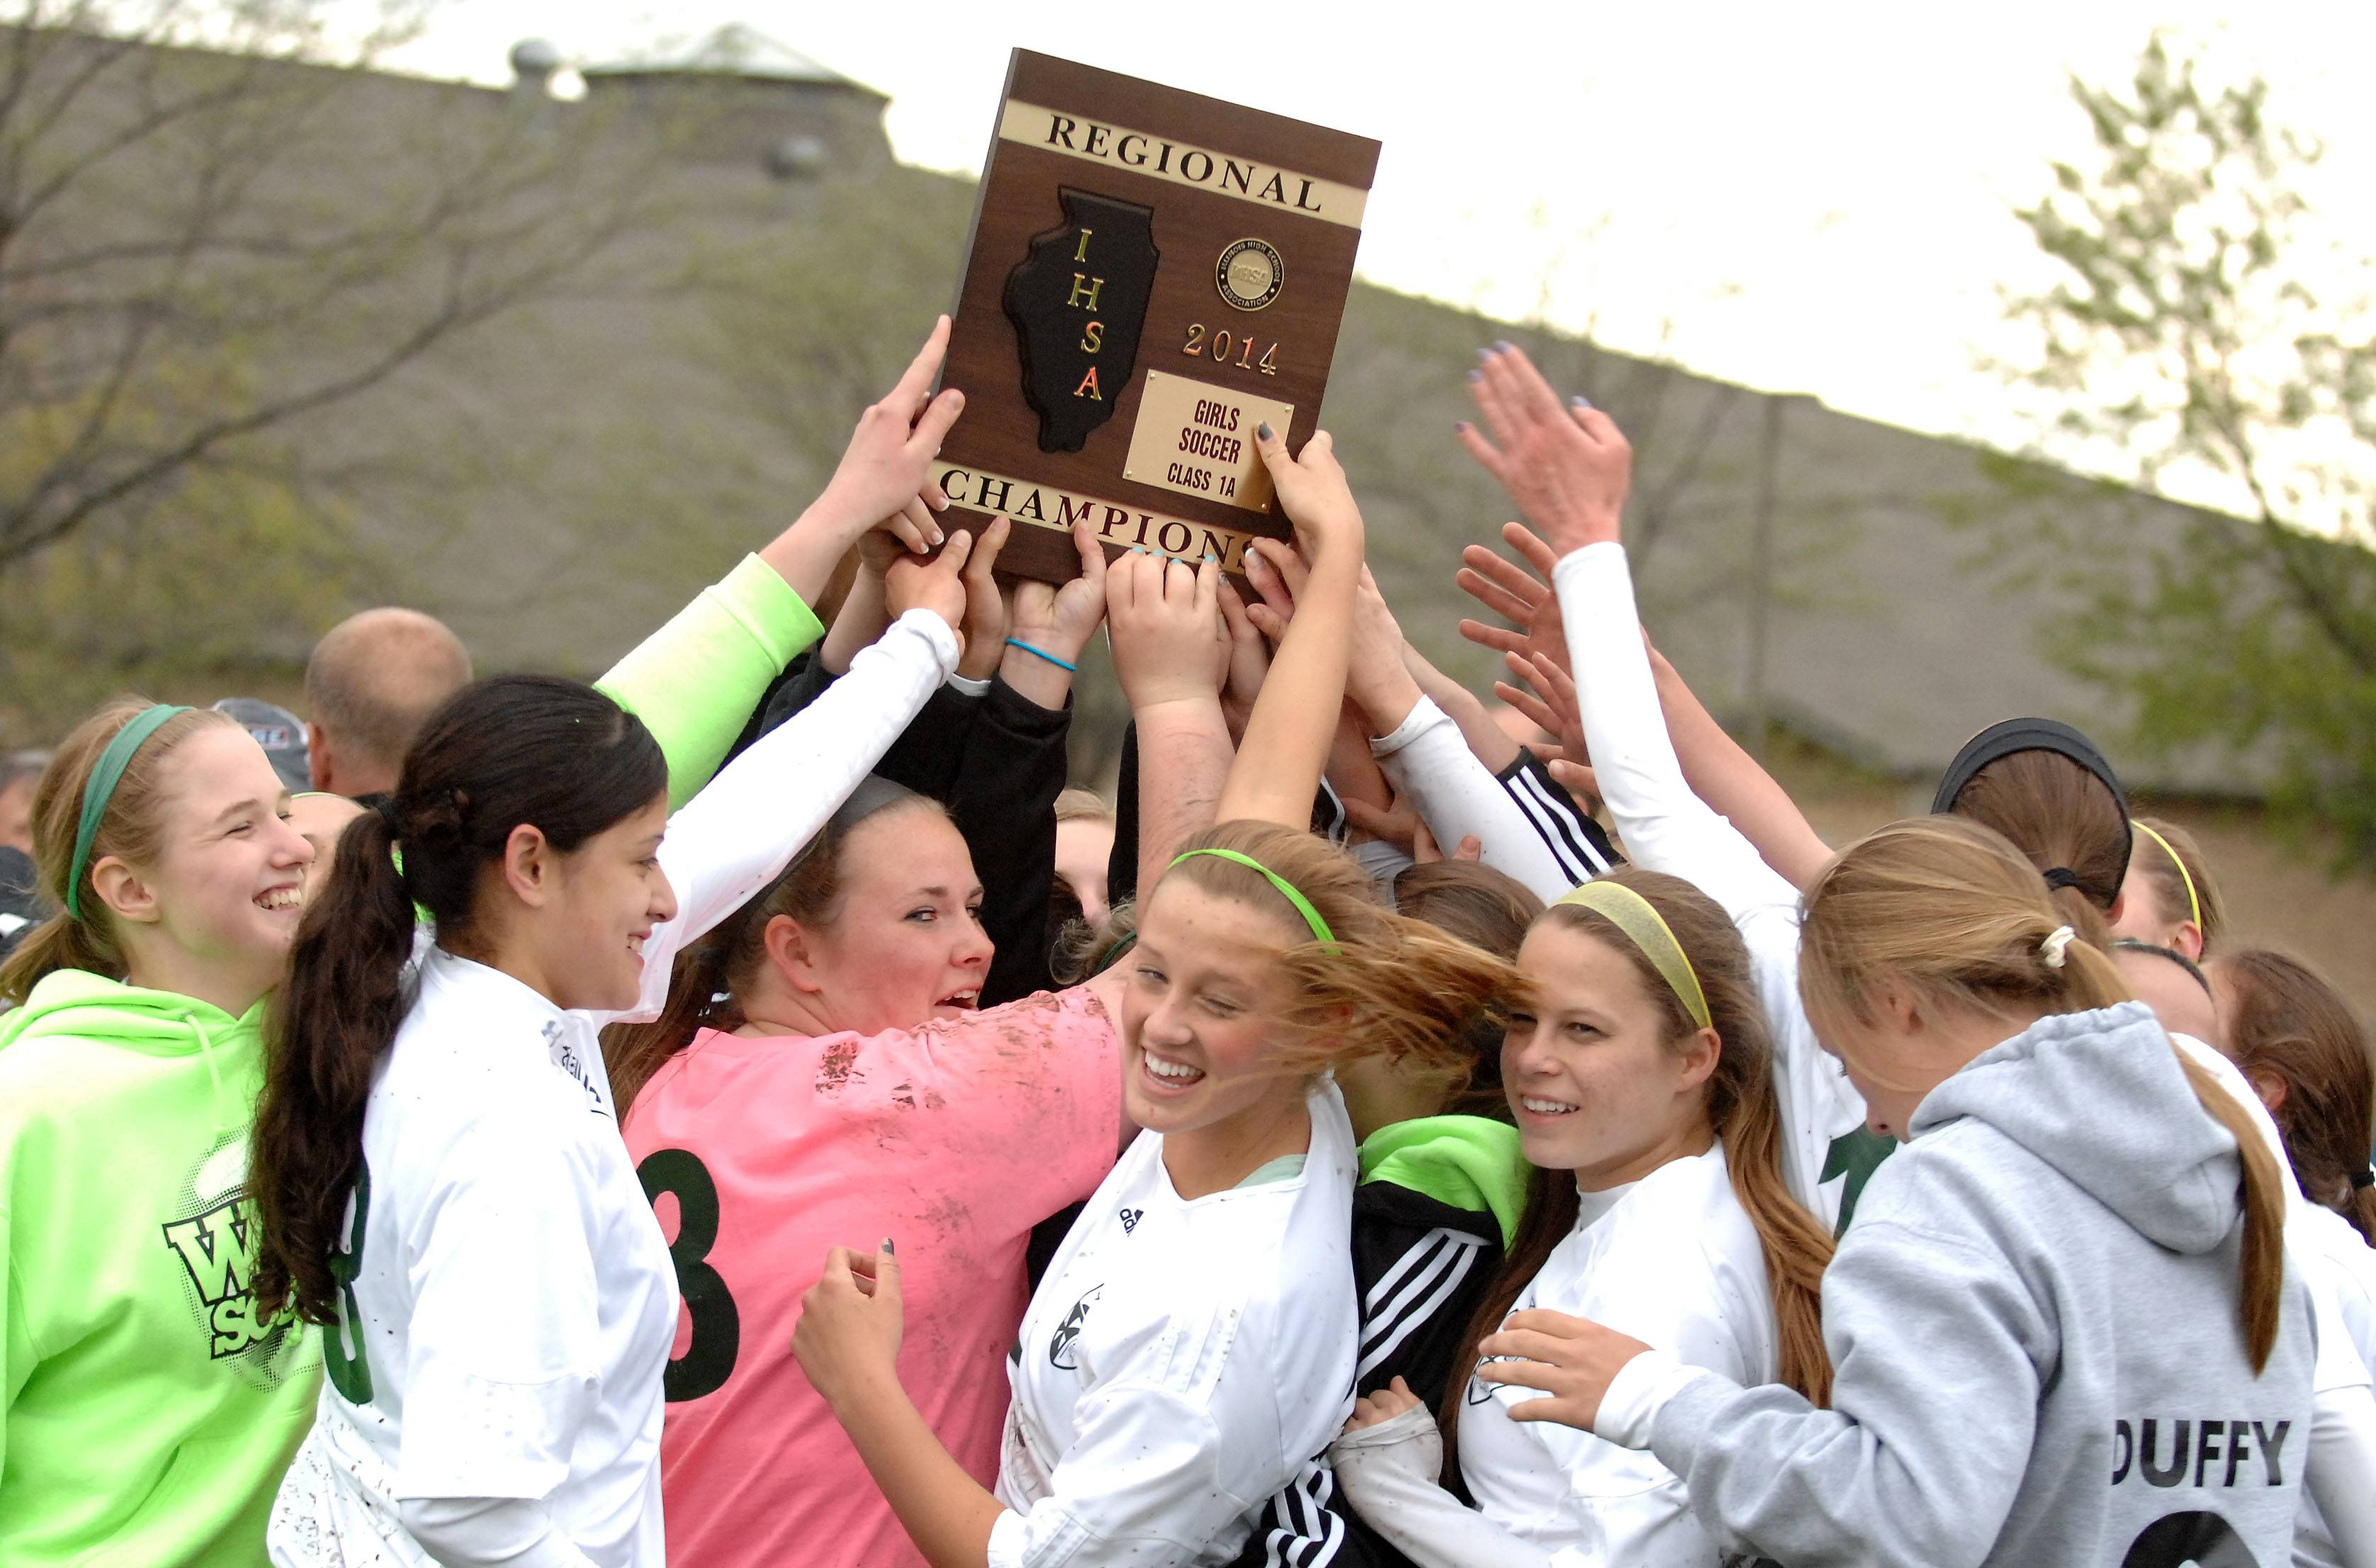 St. Edward players hoist the regional championship plaque following Friday's regional final in Elgin.